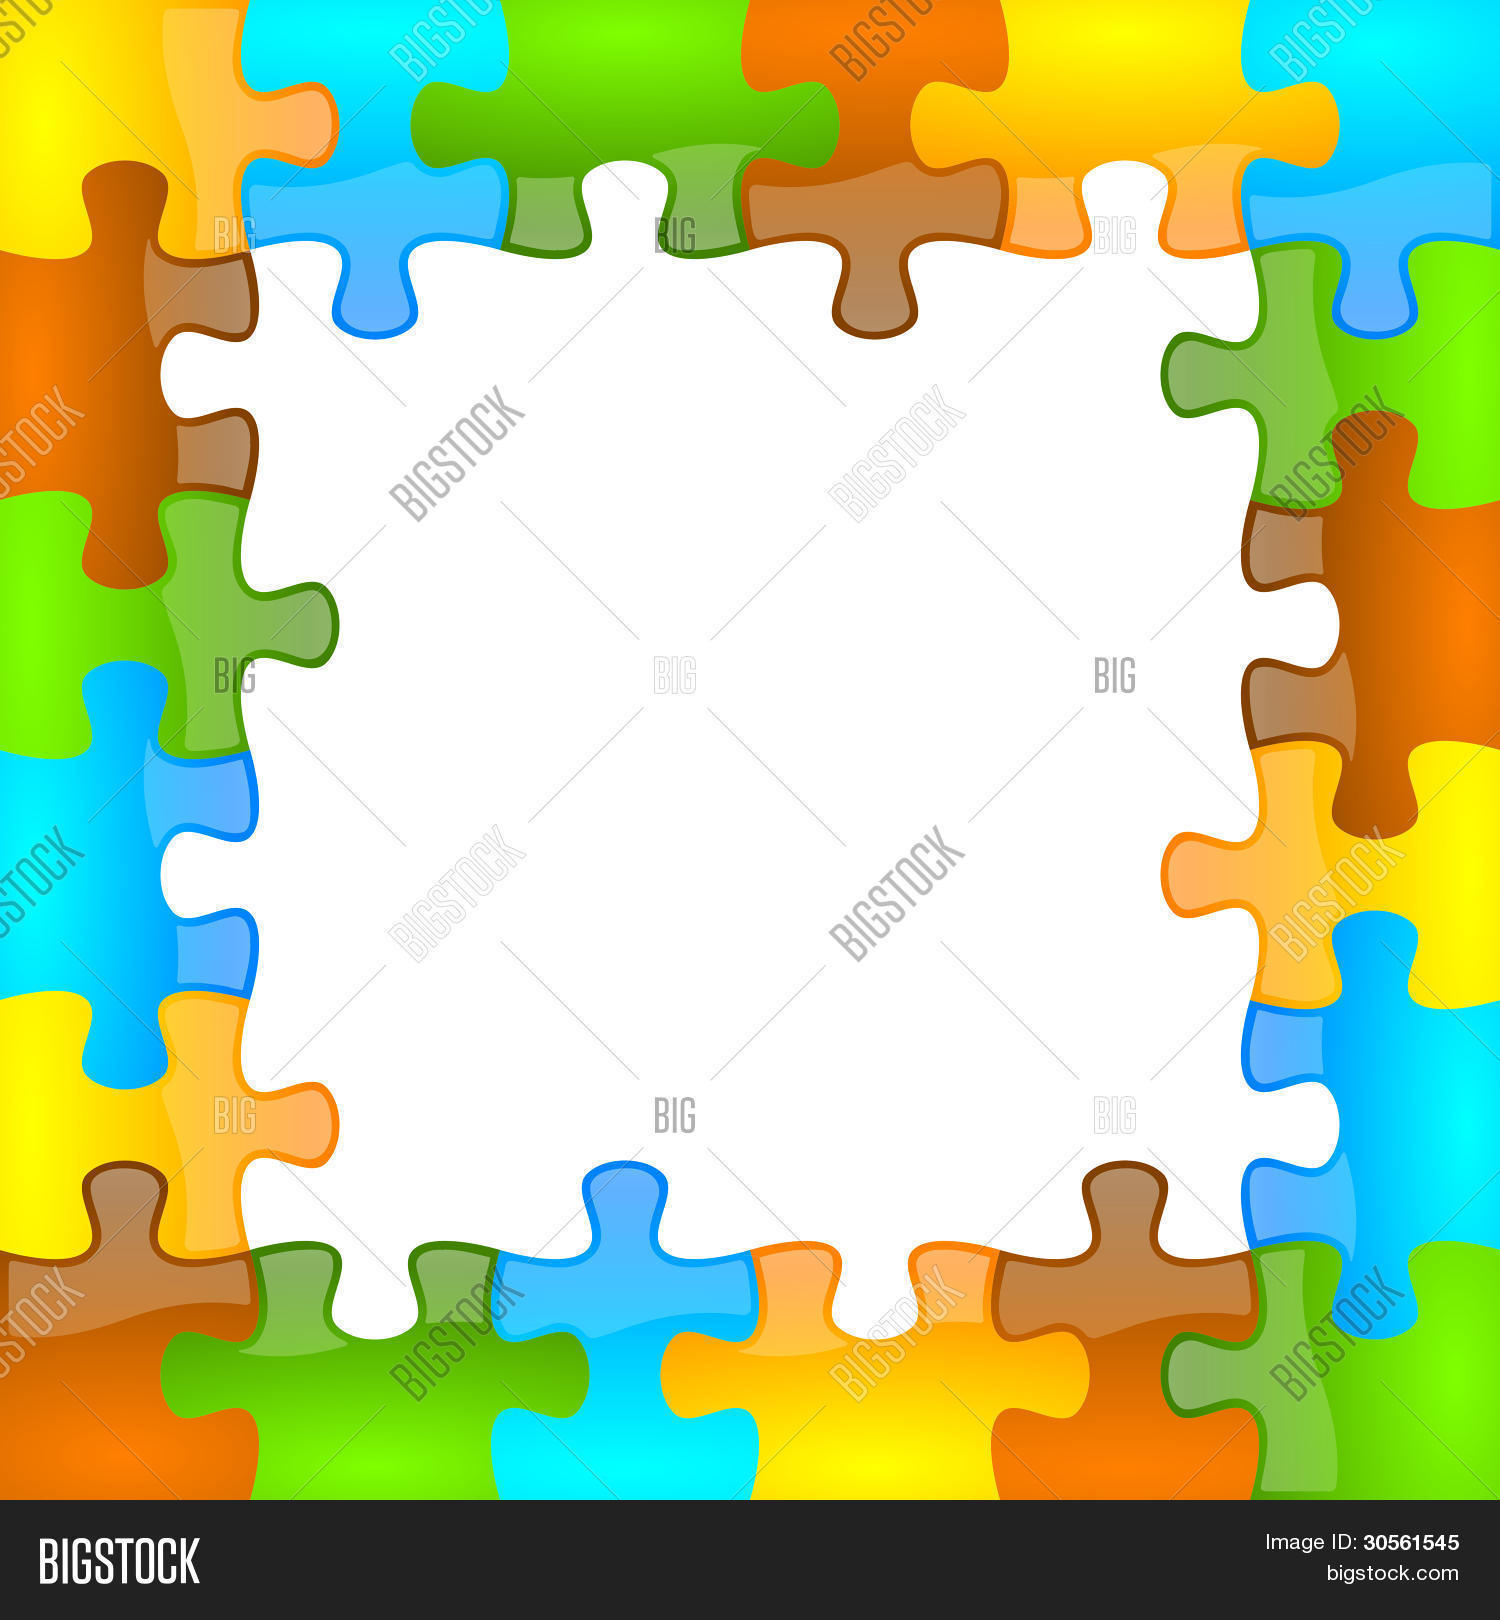 Color Glossy Puzzle Frame 6 X 6 Image & Photo | Bigstock